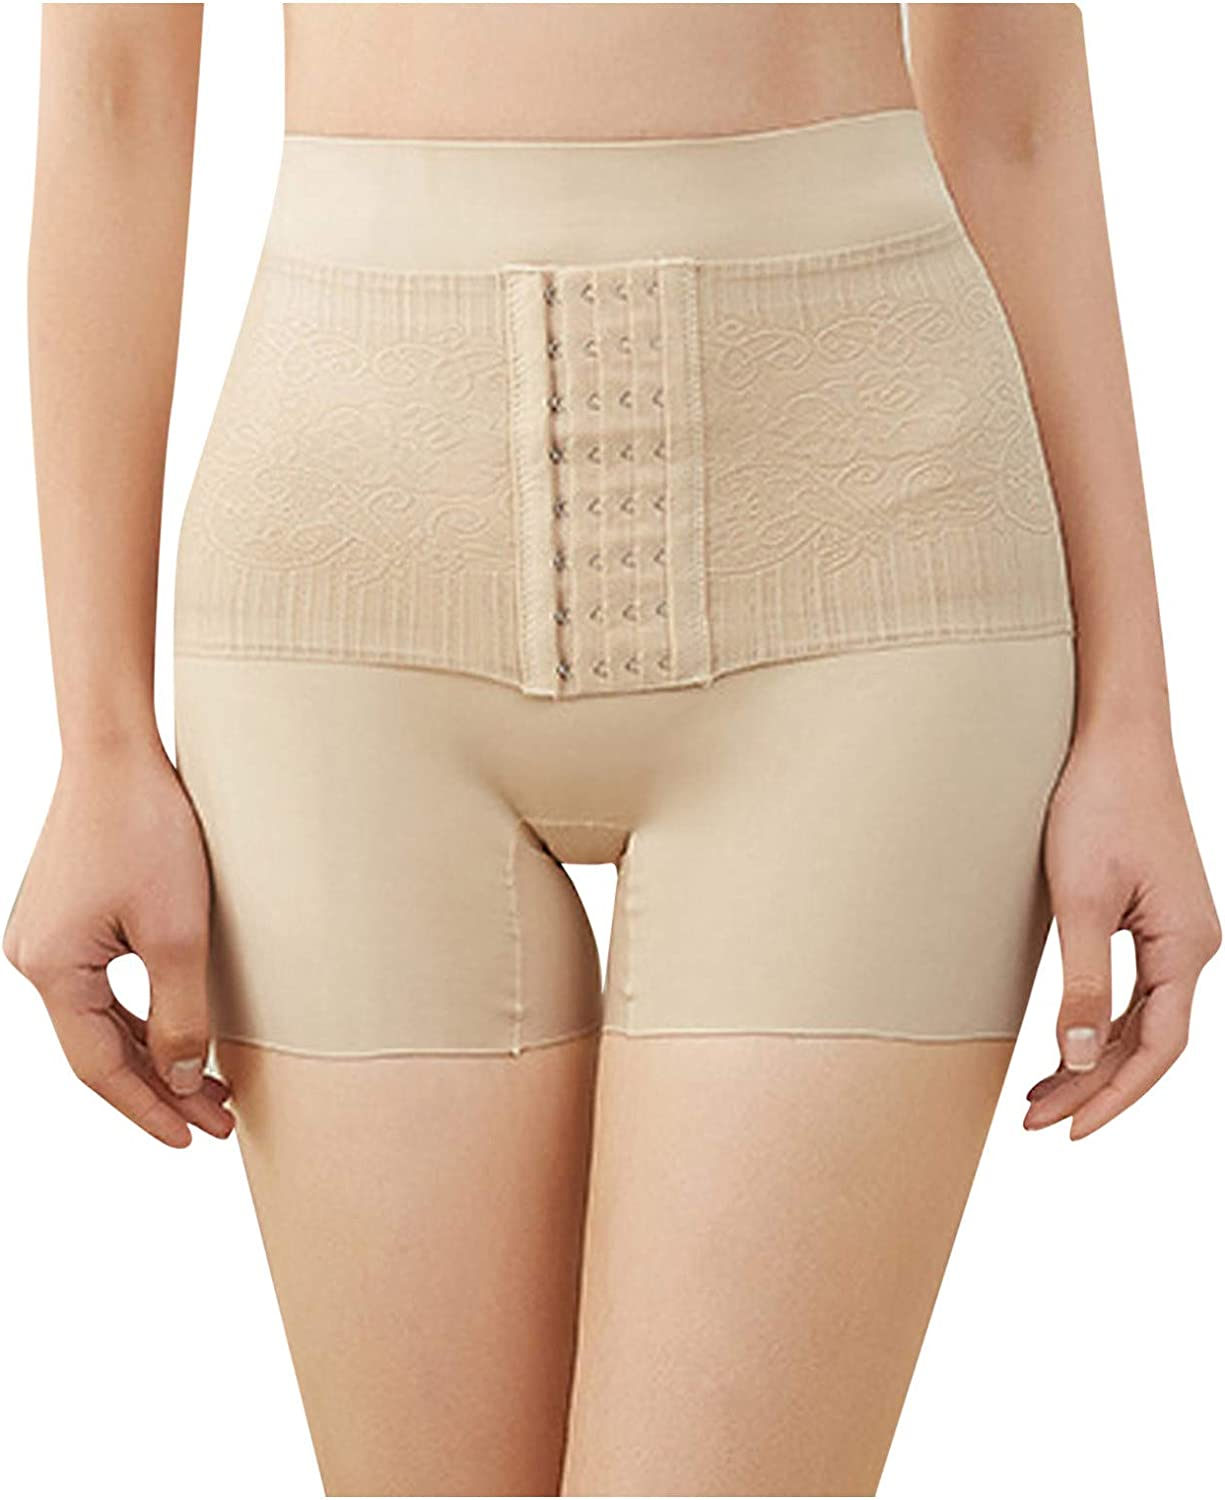 Women's High-waisted Shaping Shorts Abdomen Sexy Leaky Butt Shaping Pants Tummy Control Slim Belly Band for Weight Loss